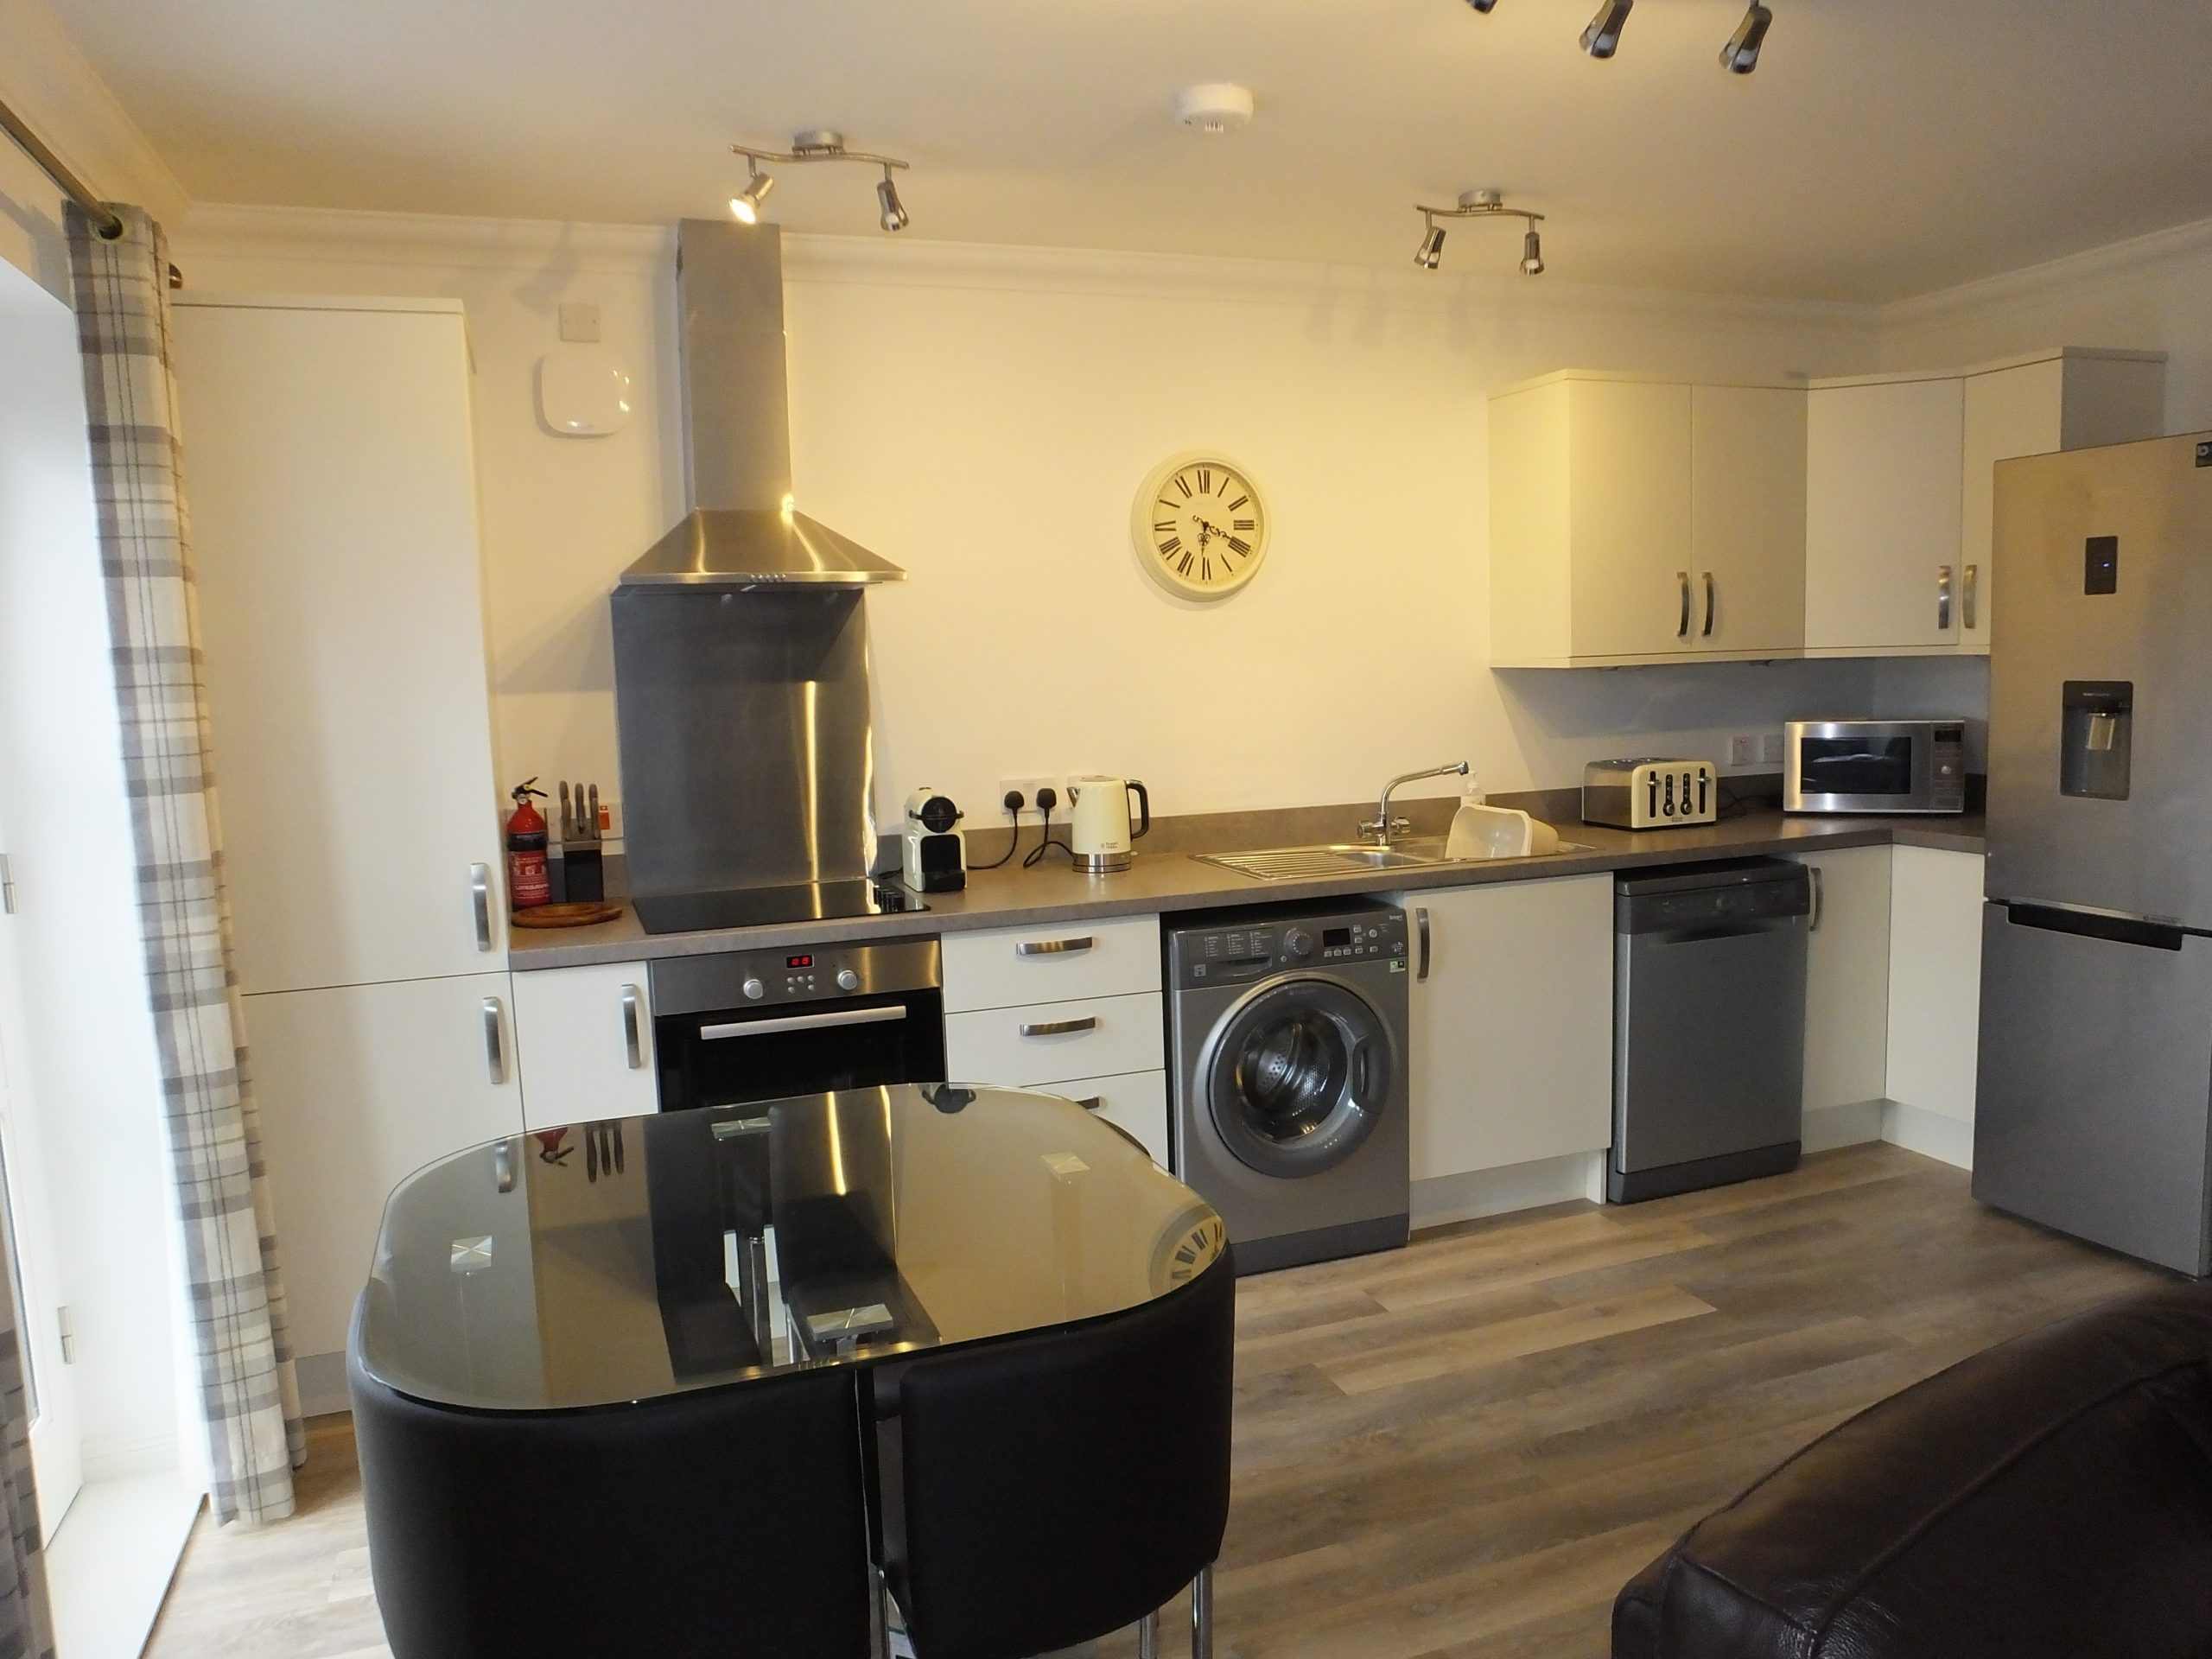 Flat 3 - Kitchen and Dining Area